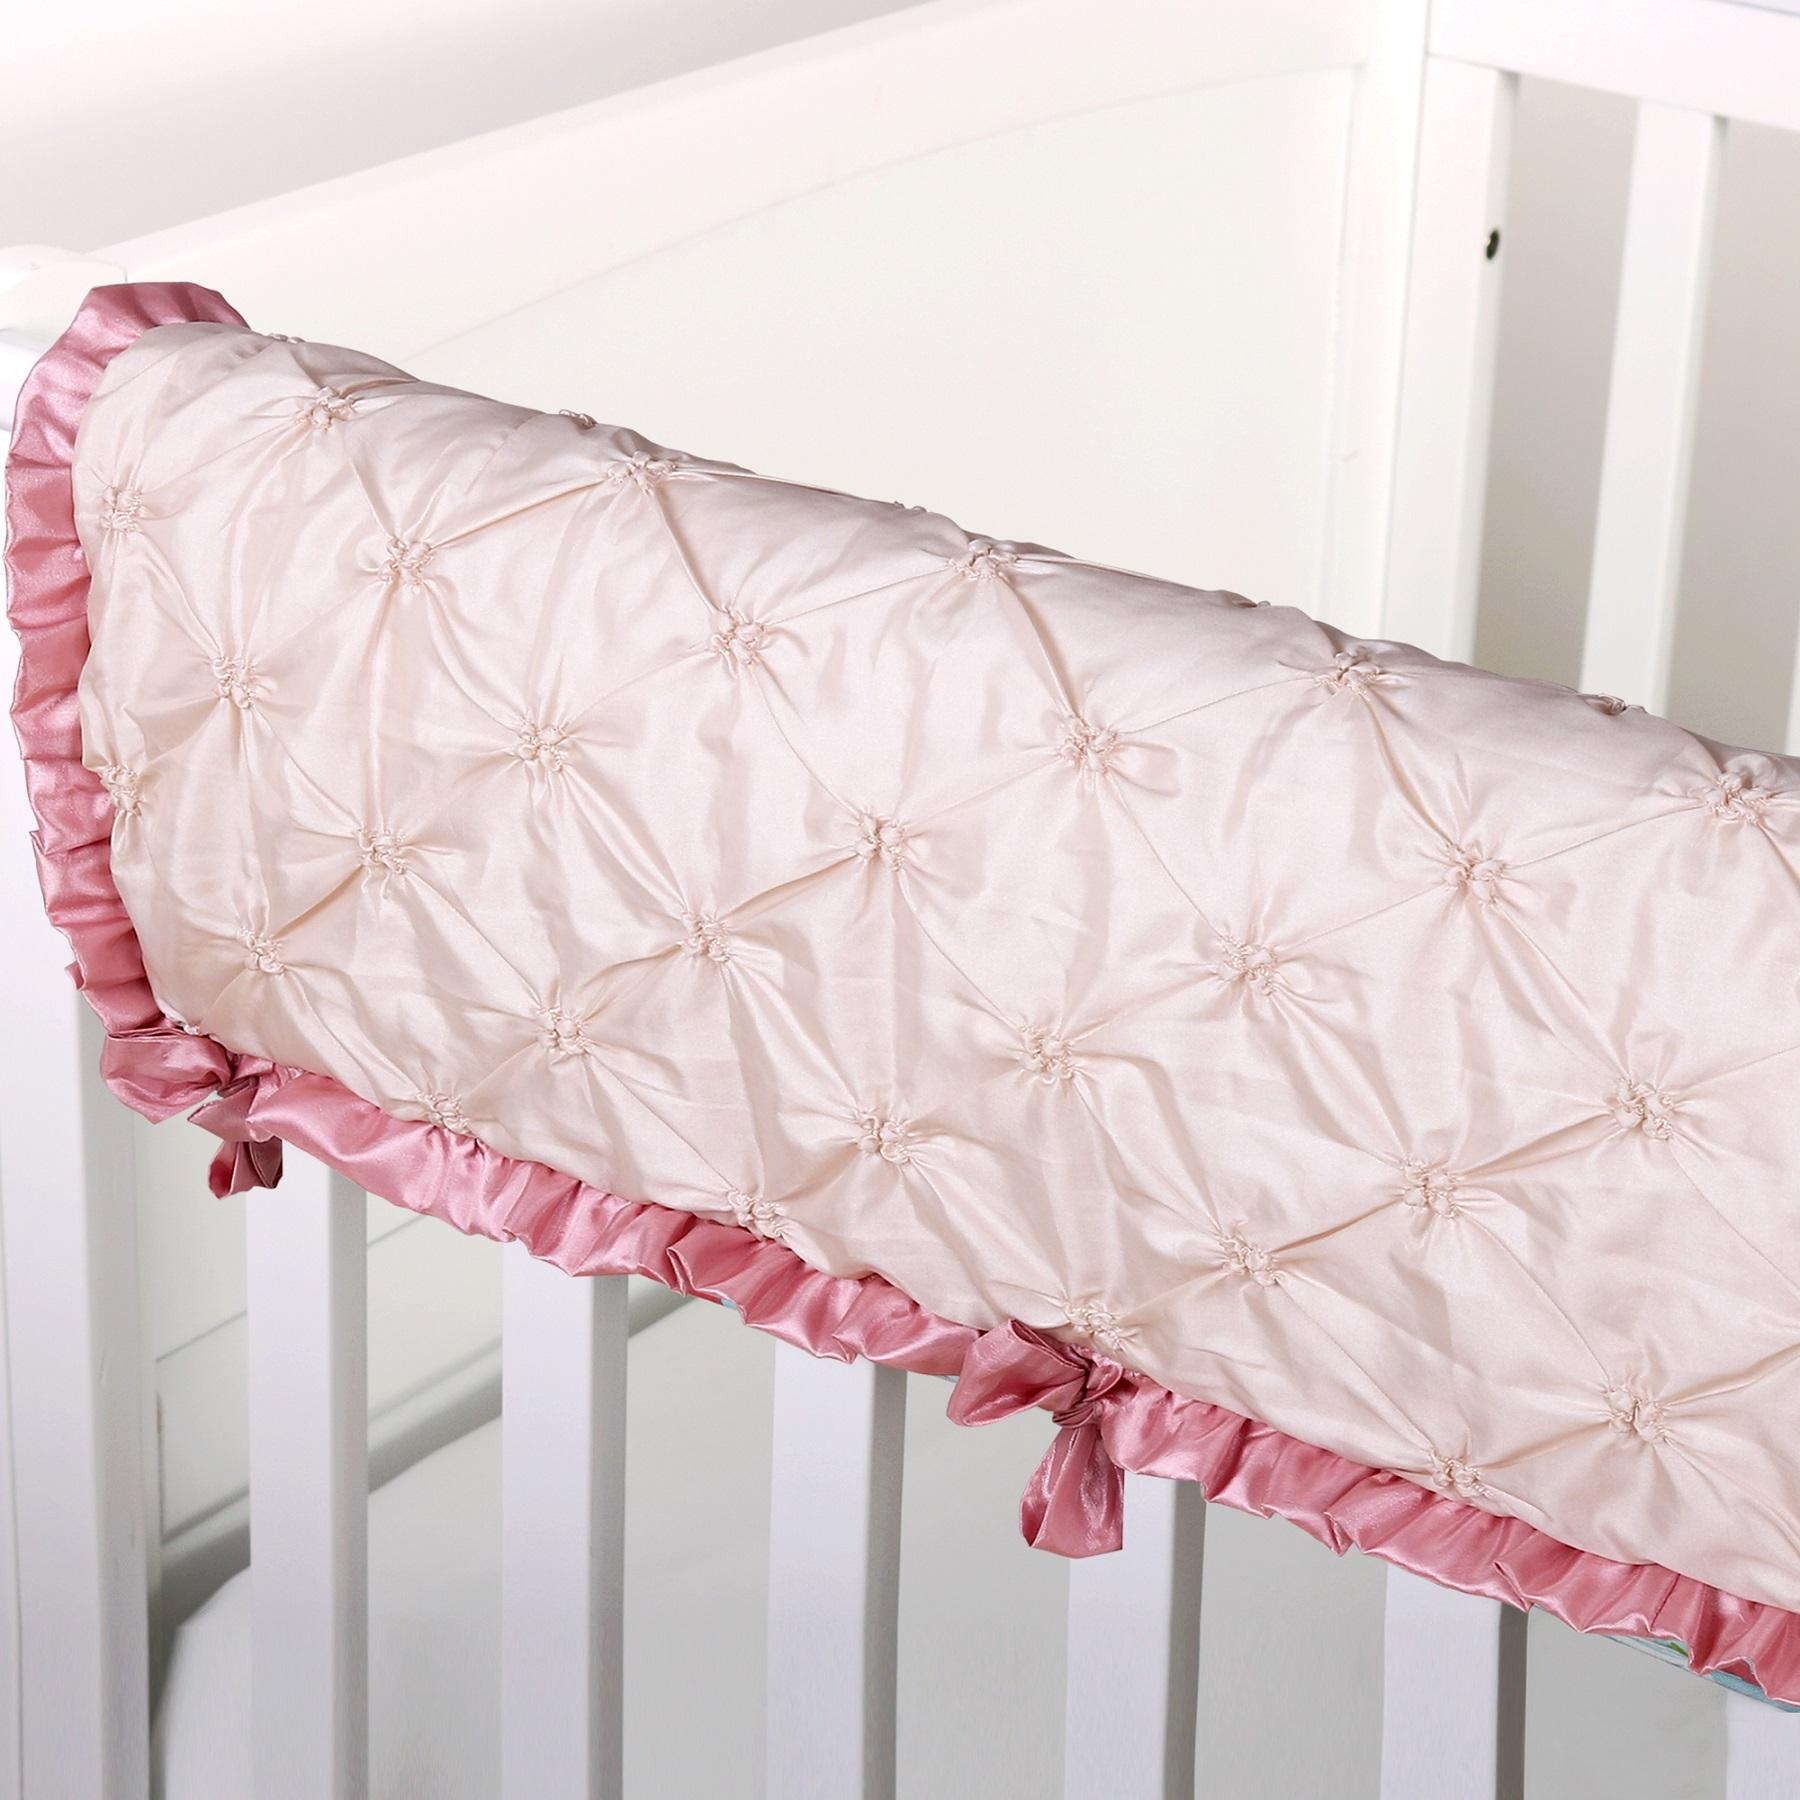 Baby cribs keep your baby close - This Crib Rail Guard Cover Will Protect Your Baby S Crib From Teeth Marks While Keeping Your Baby Safe Snug And Super Stylish